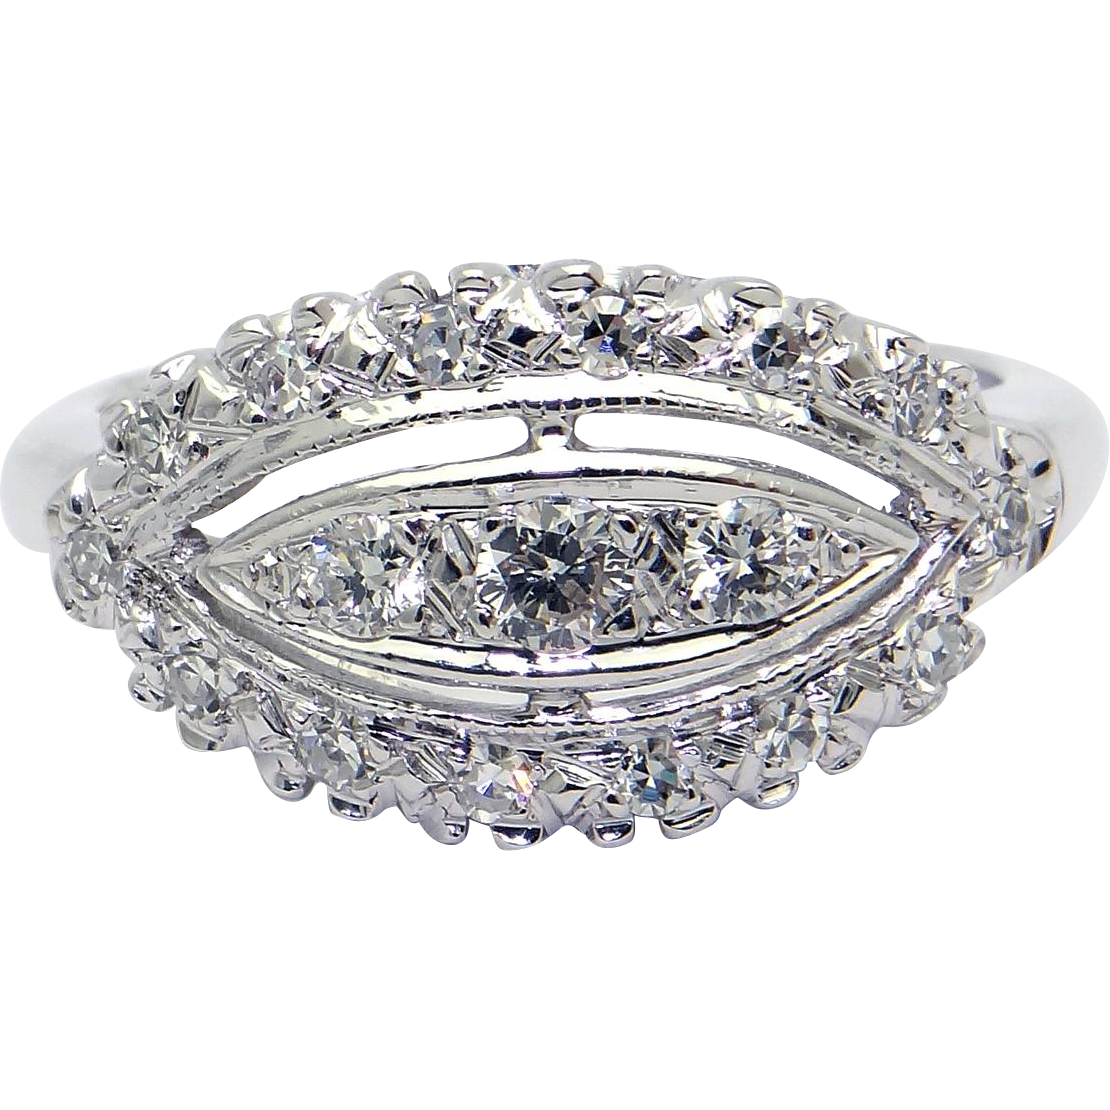 14k White Gold 40ct Round Cut Diamond Cluster Ring Size 6. Evermarker Engagement Rings. Star Hollywood Wedding Rings. 6 Carat Engagement Rings. Goku Wedding Rings. Belle Wedding Rings. Celebrity Wedding Rings. Sunstone Rings. Geometric Wedding Rings